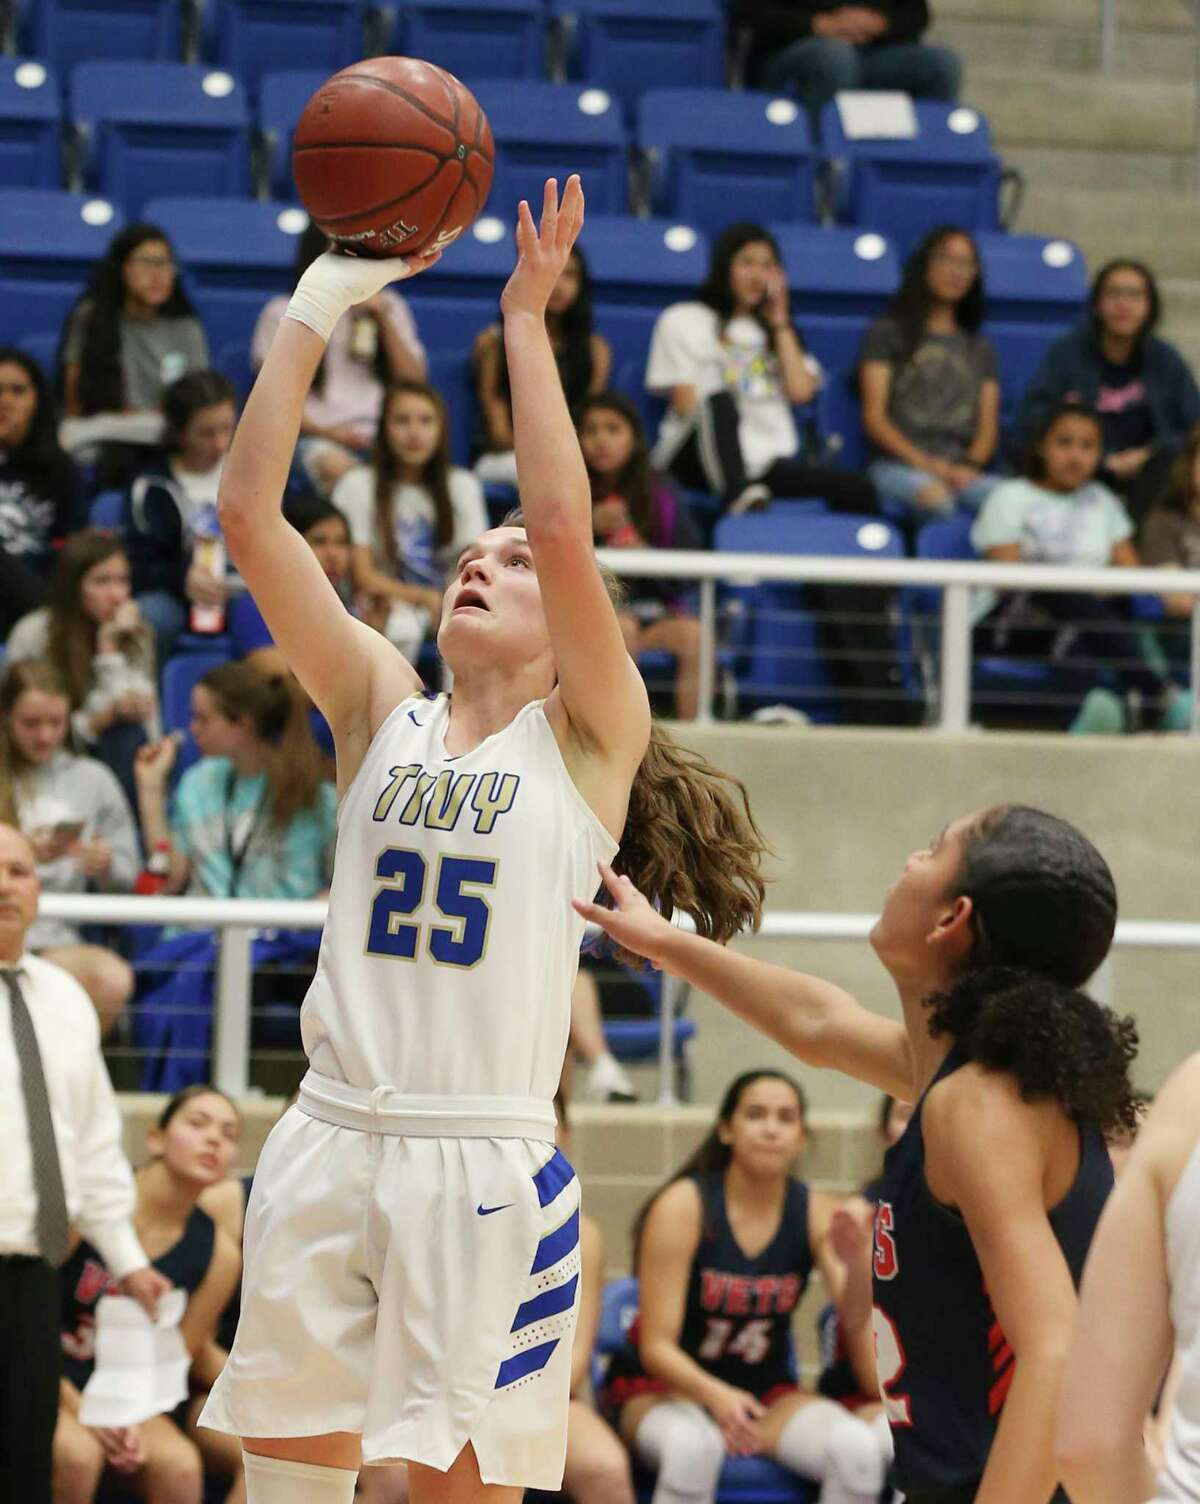 Kerrville Tivy's Ashlee Zirkel (25) scores against Corpus Christi Veterans Memorial's Tatiana Mosley (22) during their Region IV-5A semifinal game on Friday, Feb. 28, 2020.